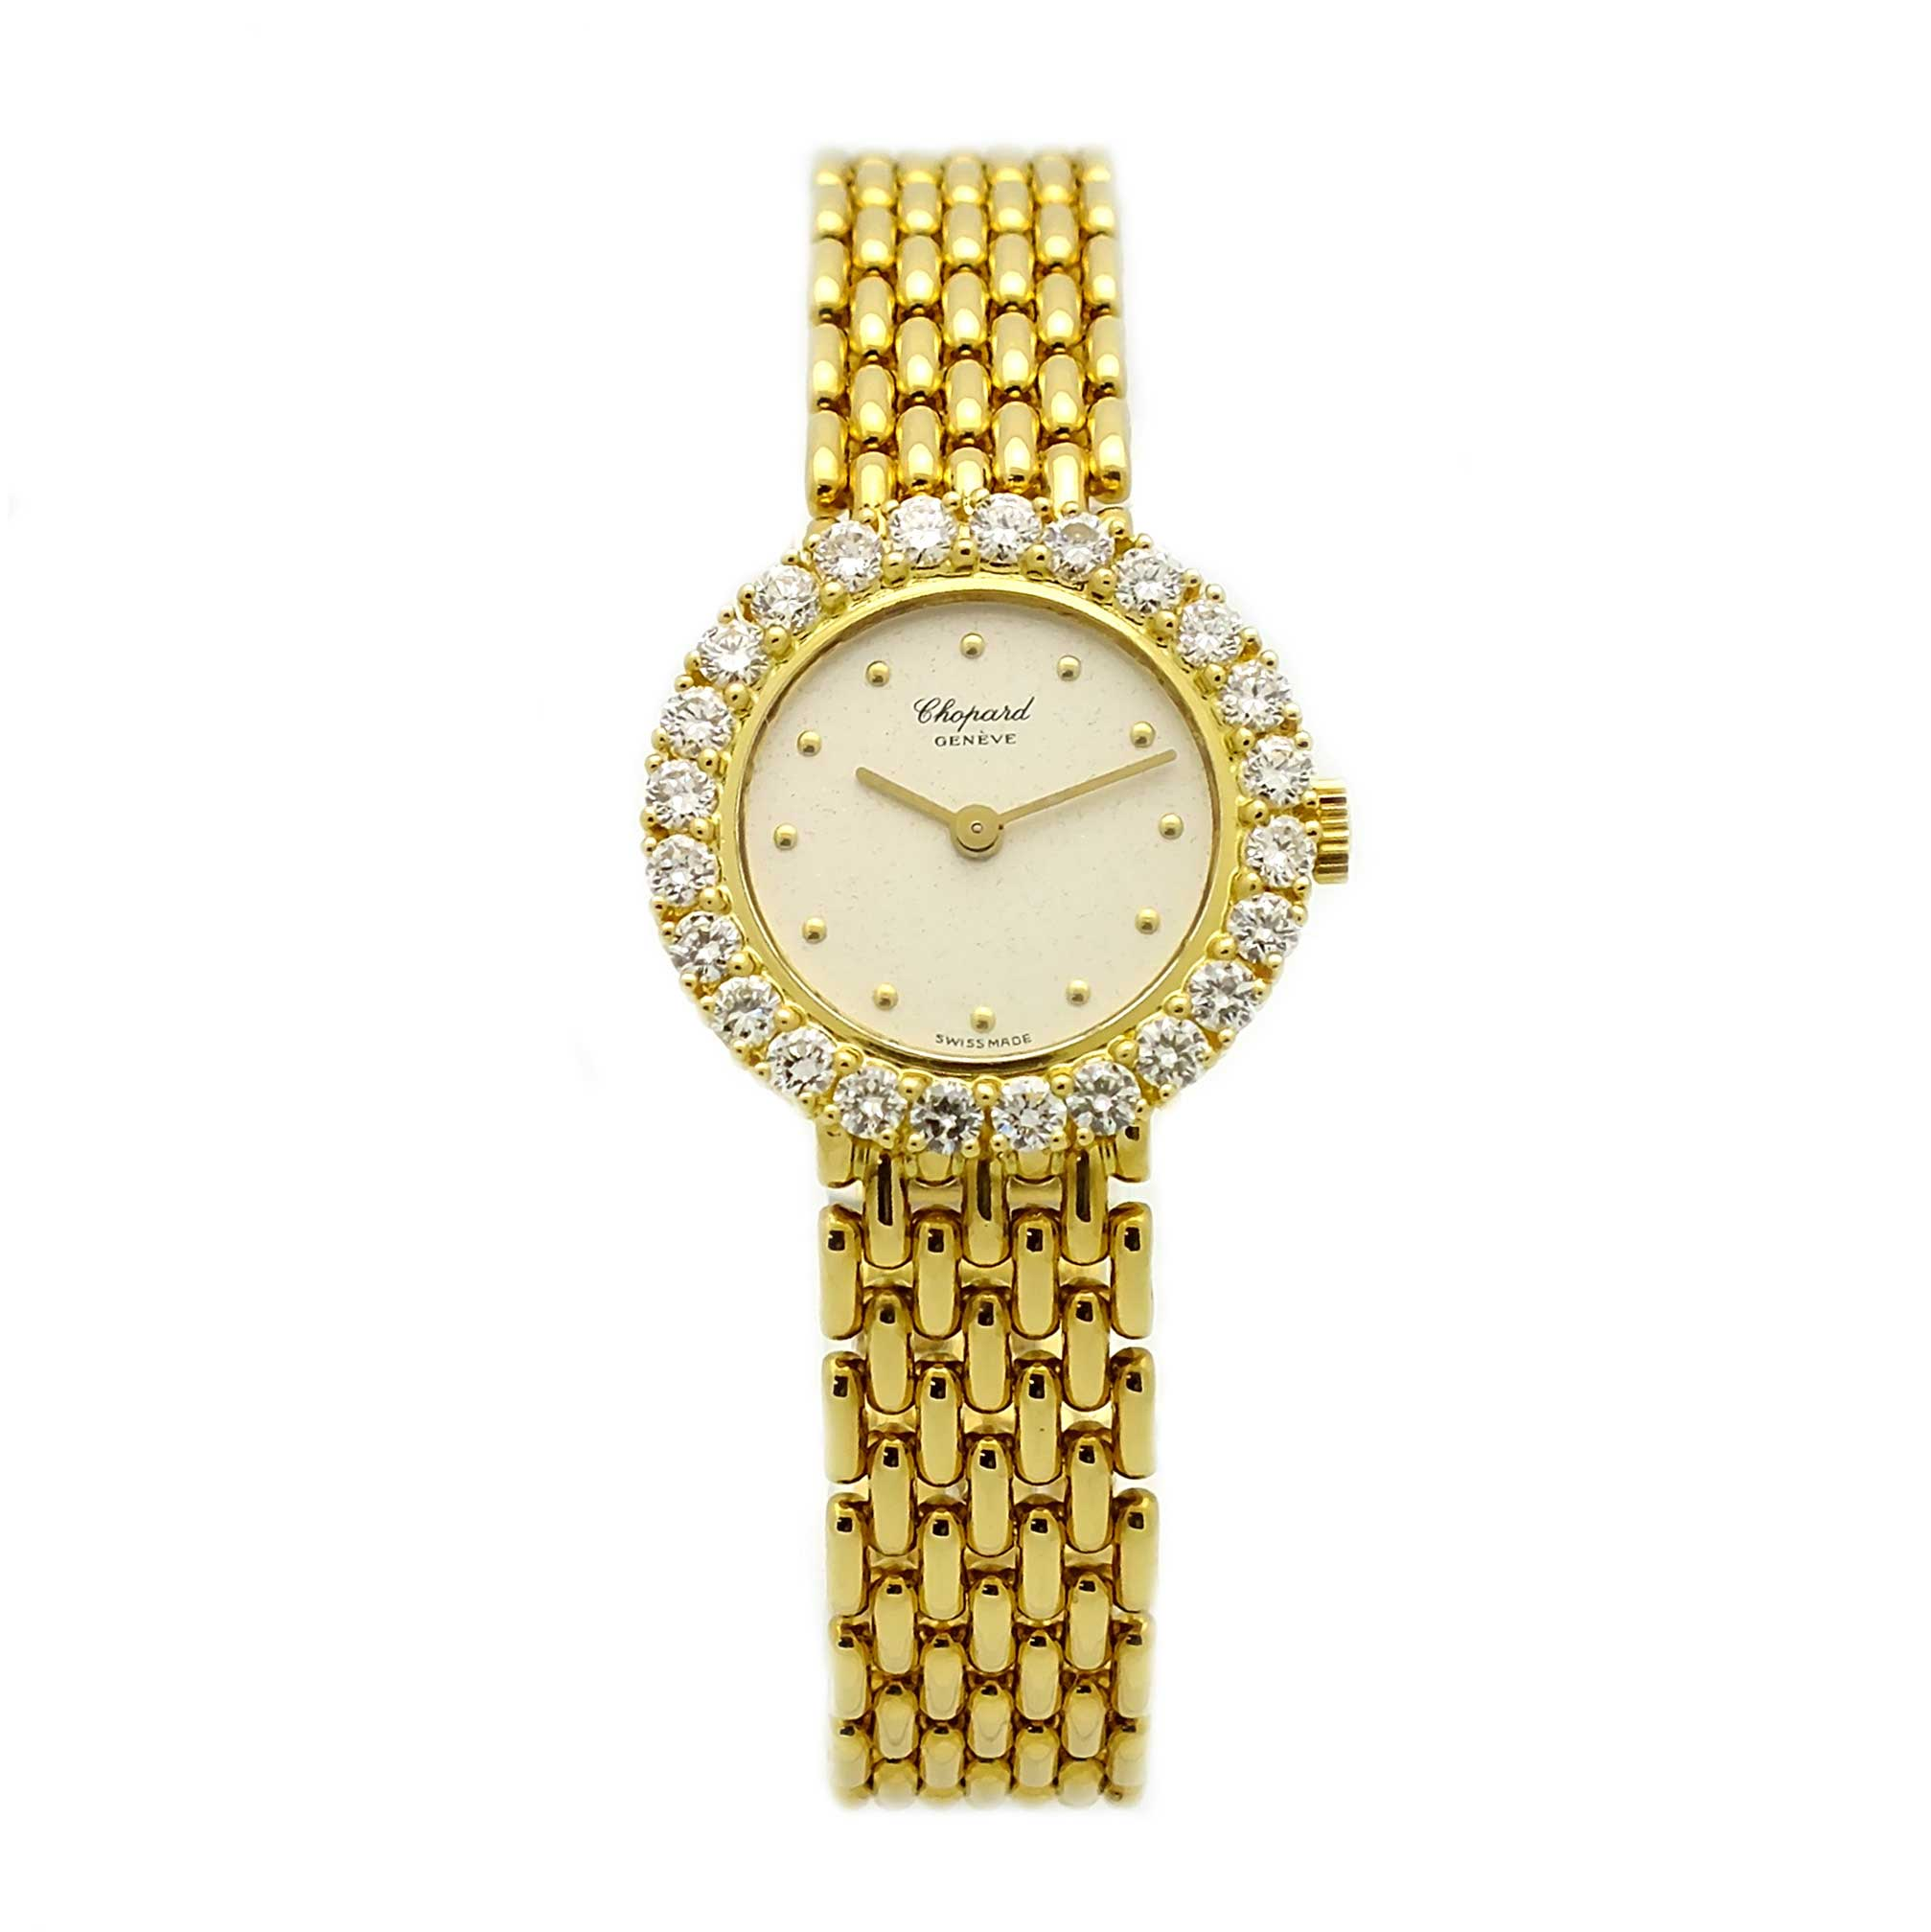 Vintage ladies Chopard watch in 18kt yellow gold with diamond bezel